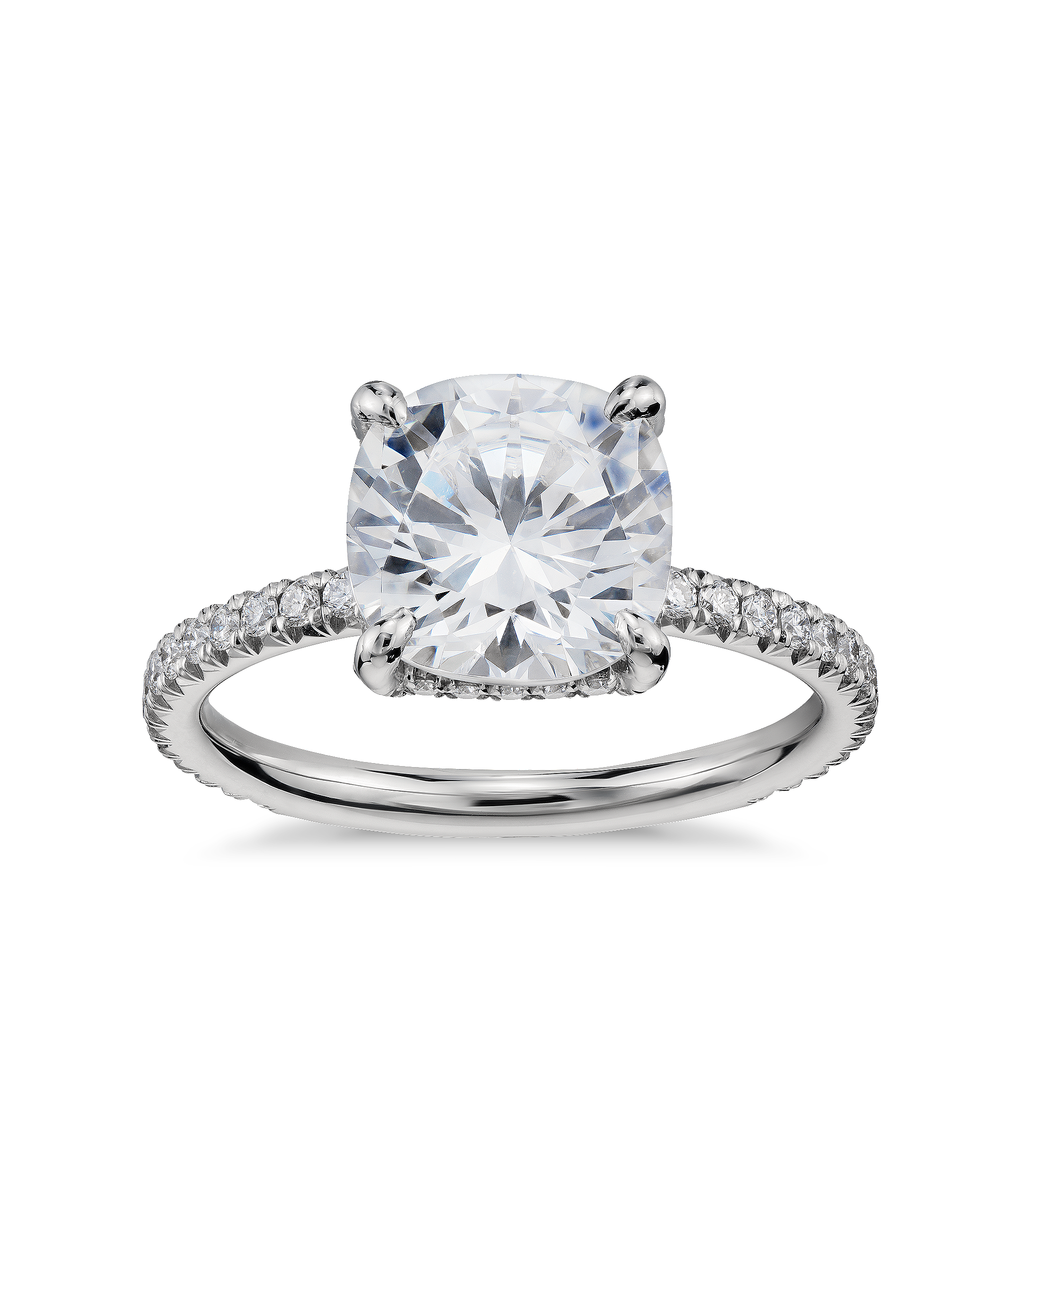 Blue Nile Cushion Cut Petite French Pavé Crown Diamond Engagement Ring